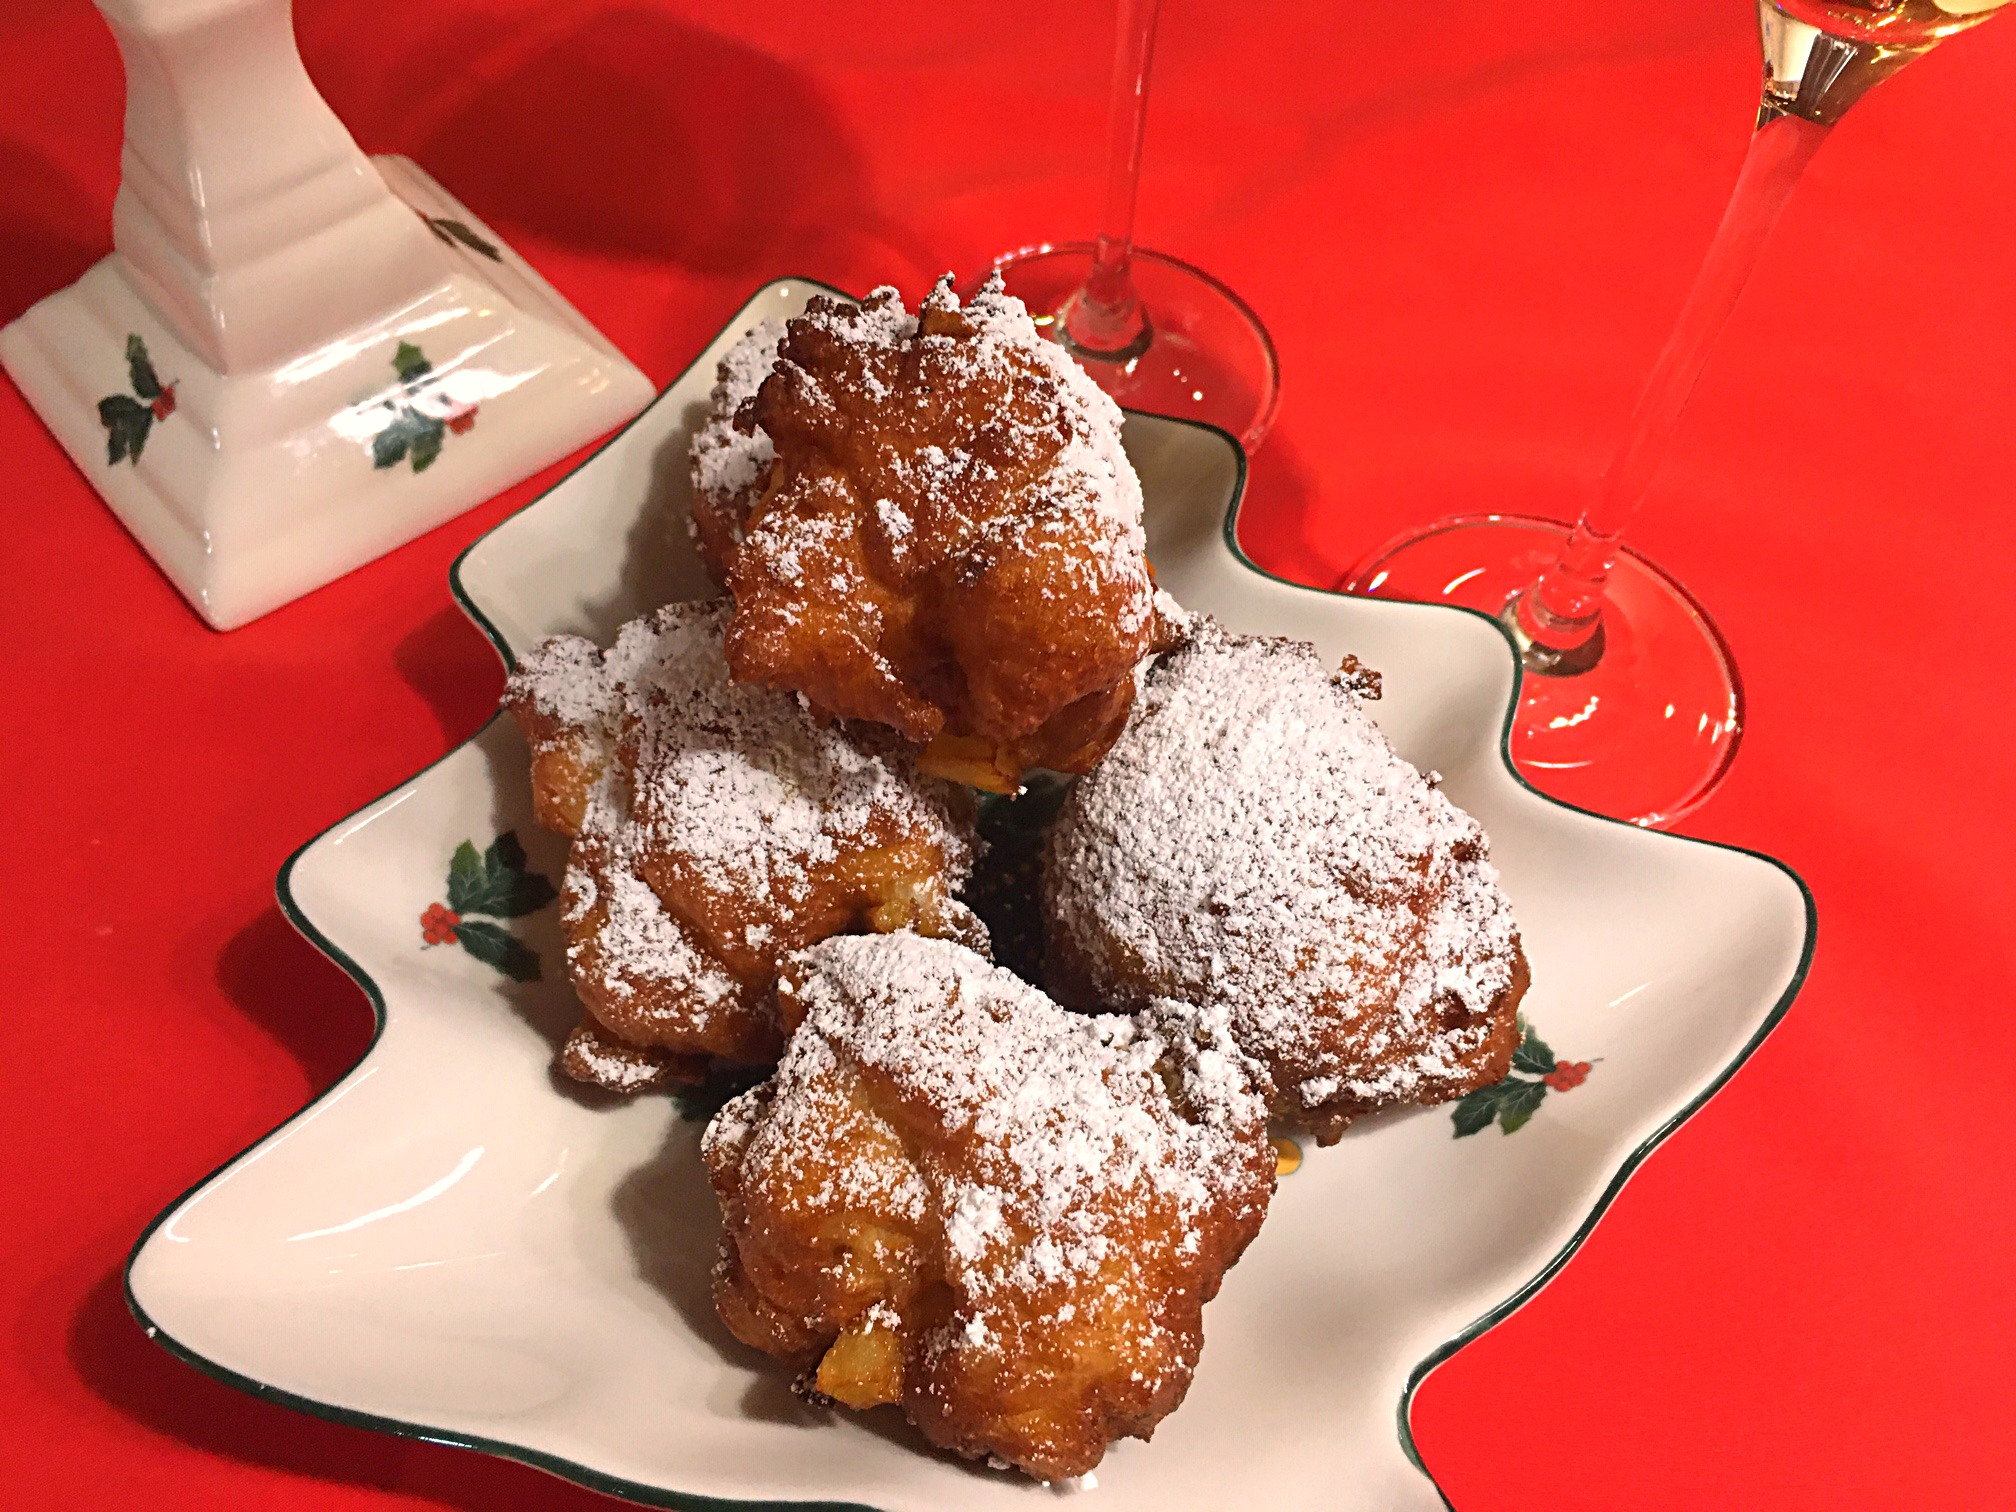 Oliebollen Recipe Dutch Beignets Oly Moly They Re Good Club Foody Club Foody